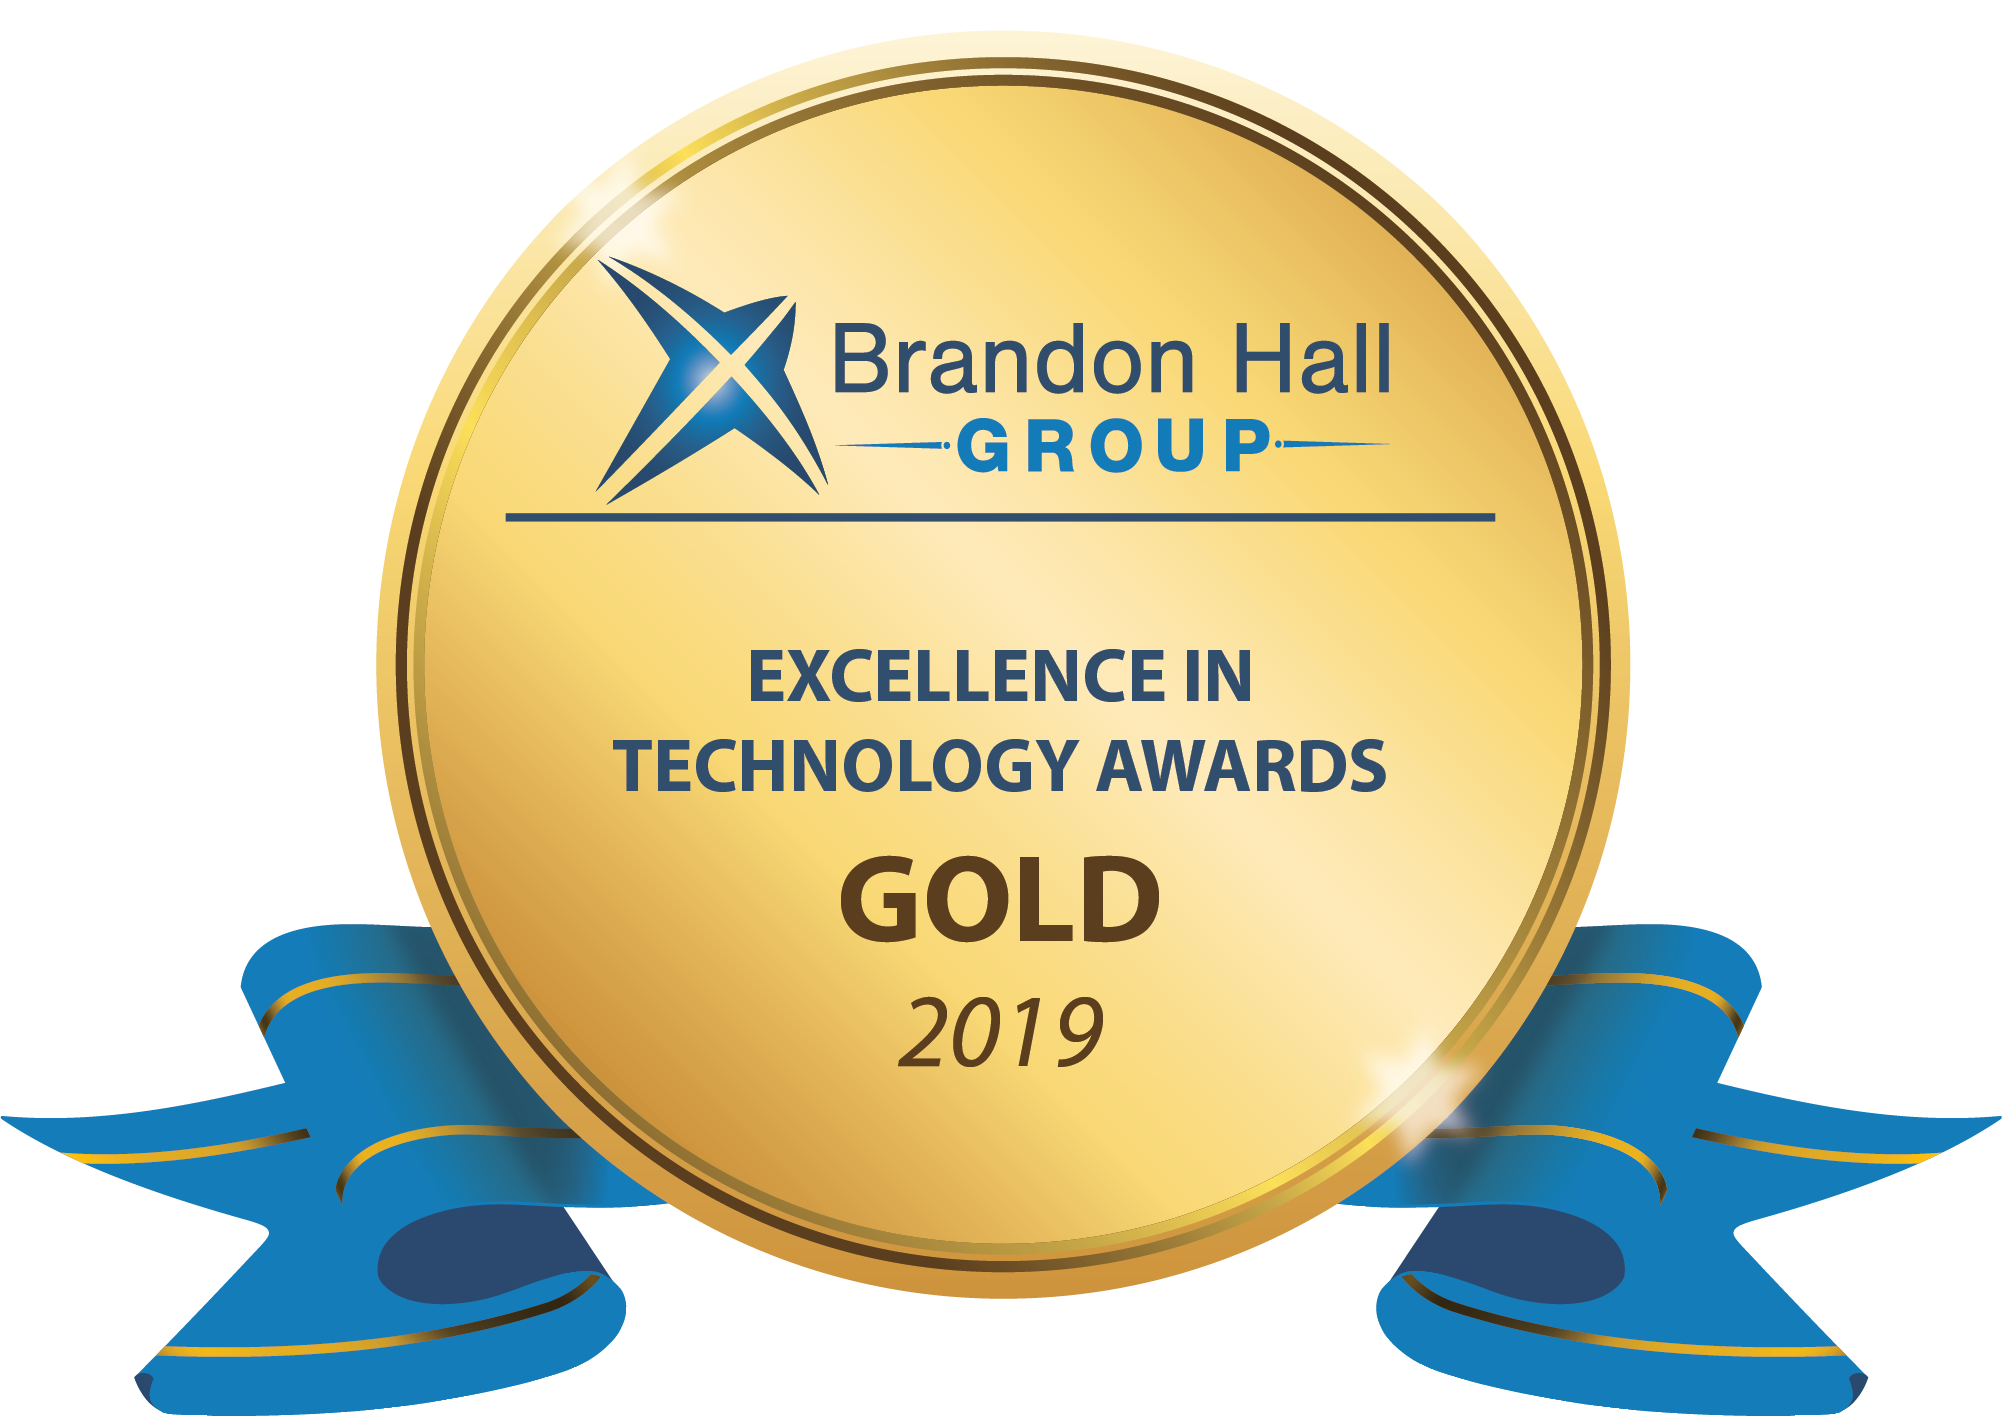 2019 GOLD Brandon Hall Group Excellence in Technology Award,  Best Advance in Mobile Sales Enablement and Performance Tools